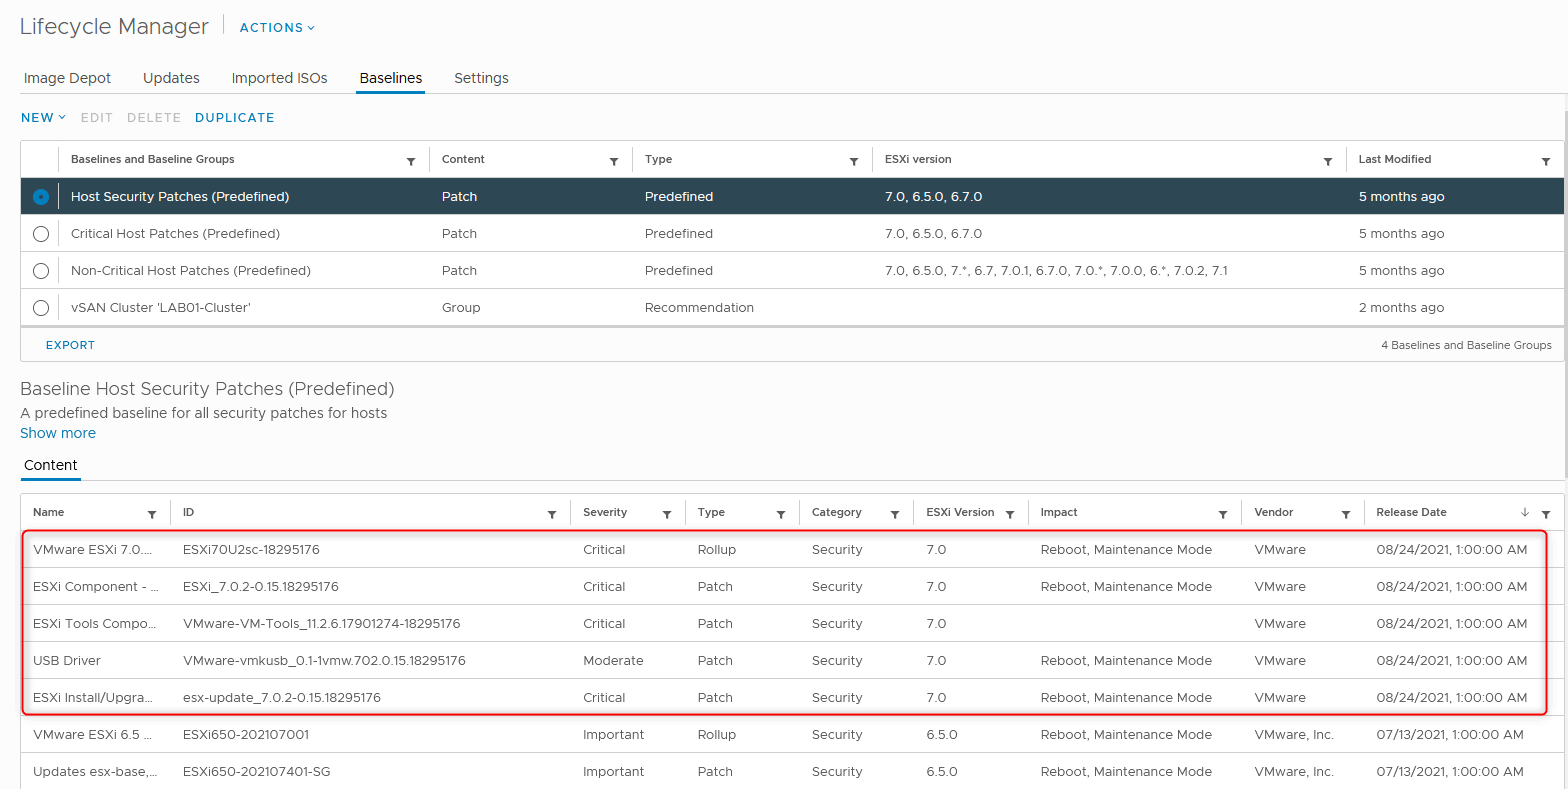 The vSphere 7u2c update is dated on the 24/08/2021